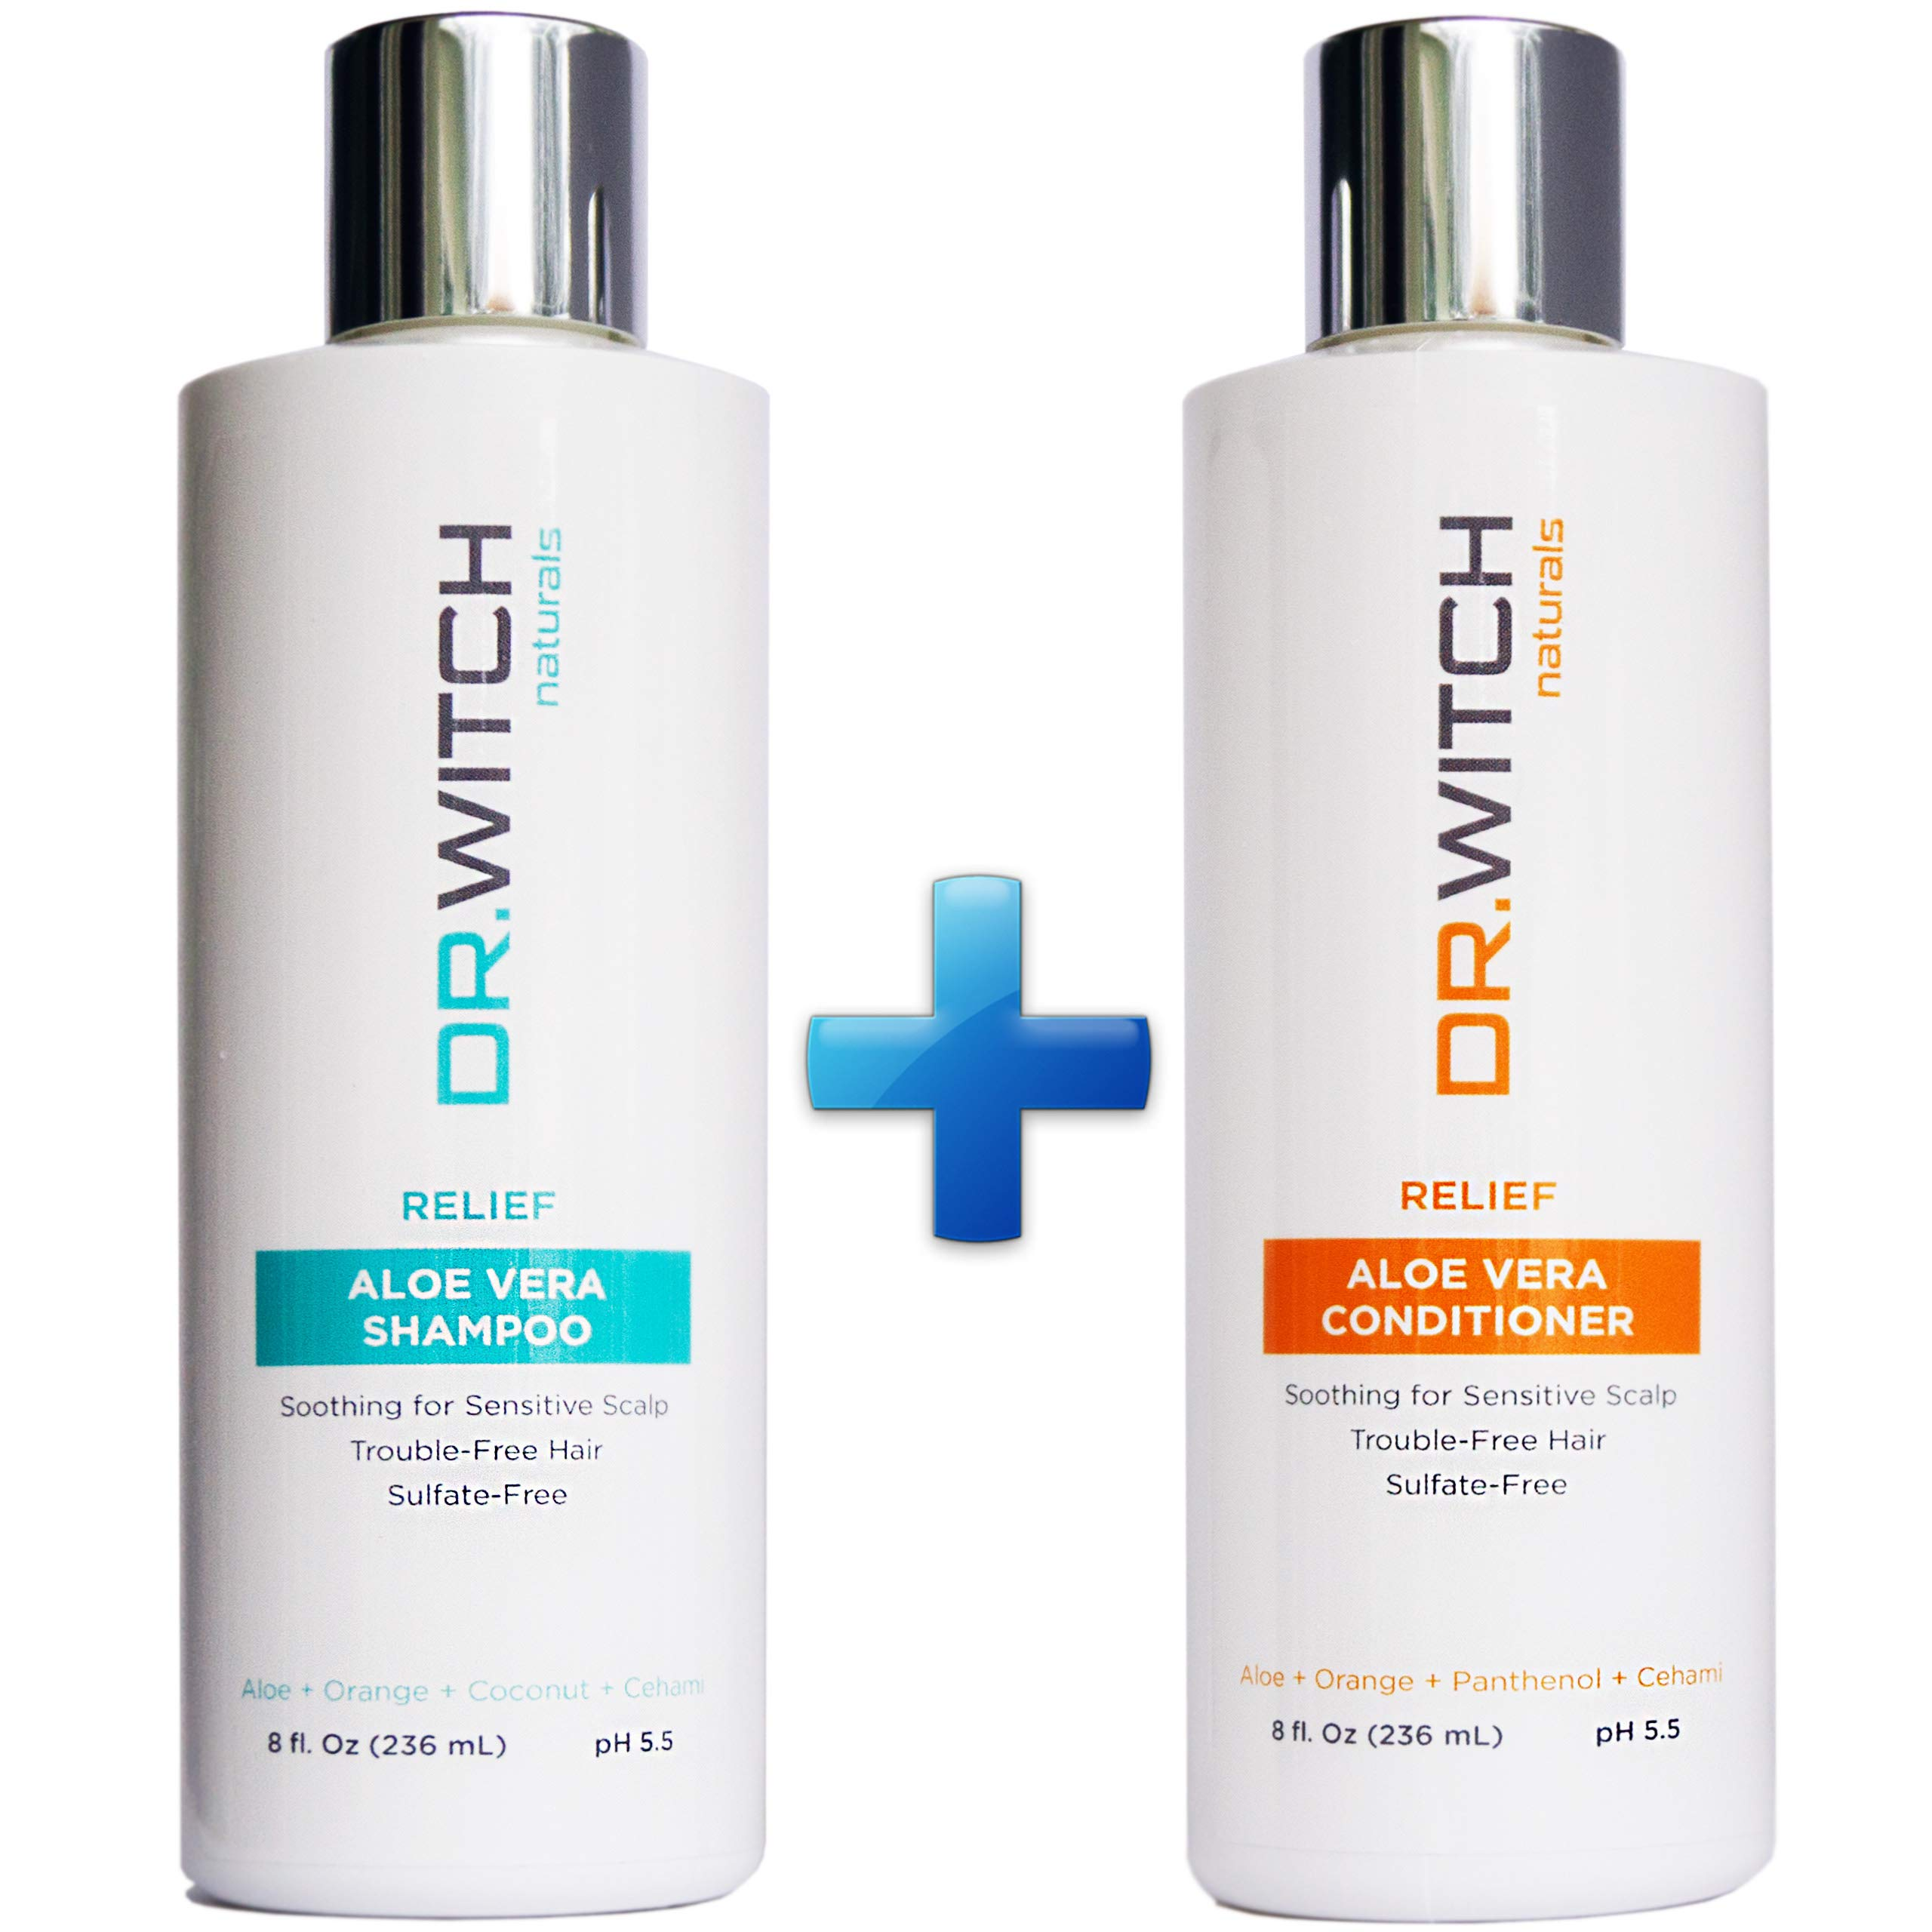 Scalp Relief, Hair Growth Shampoo & Conditioner Set. Natural Ingredients for Sensitive, Dry, Itchy Scalp. Vegan, Sulfate Free & pH balanced for Hair Regrowth, Thickening. Safe for Color Treated Hair by Dr.Witch